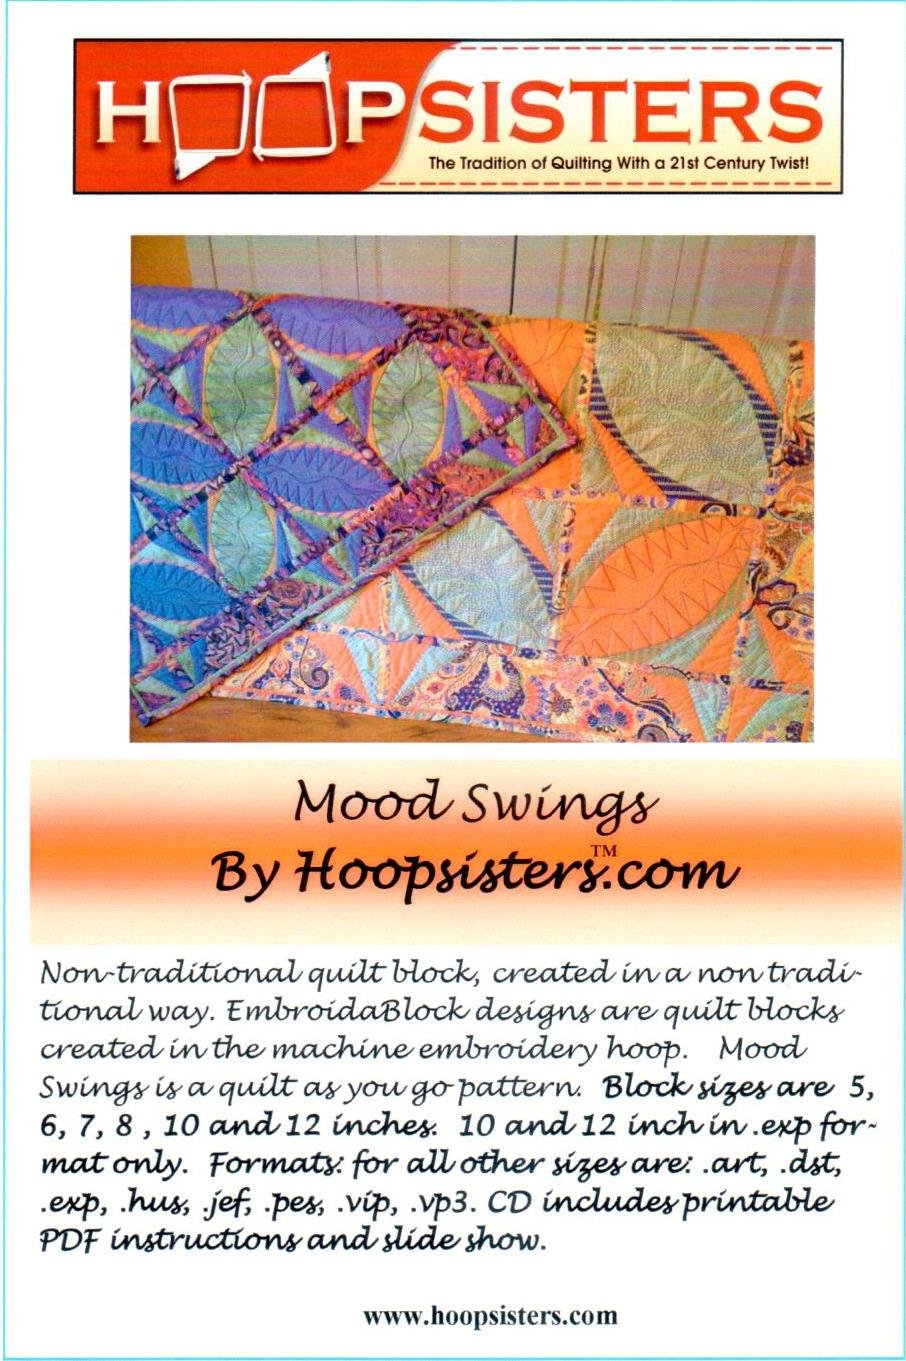 Mood Swings by Hoopsisters